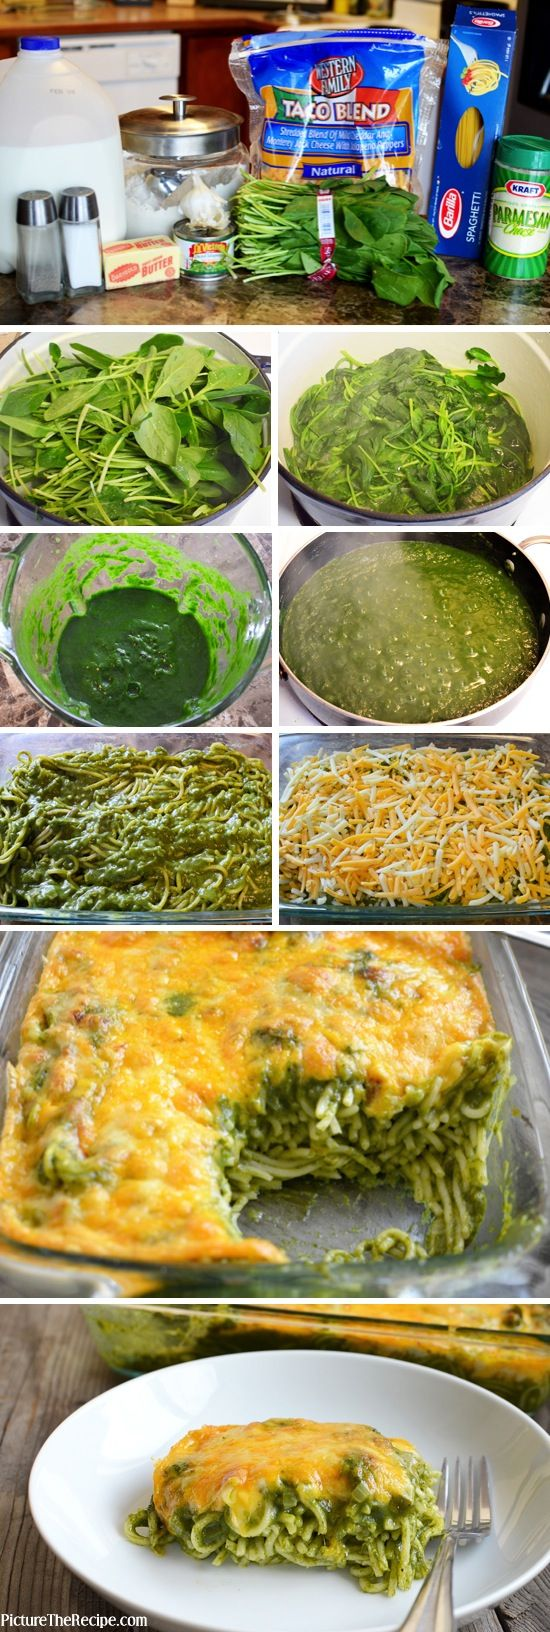 Baked Cheesy Spinach Pasta